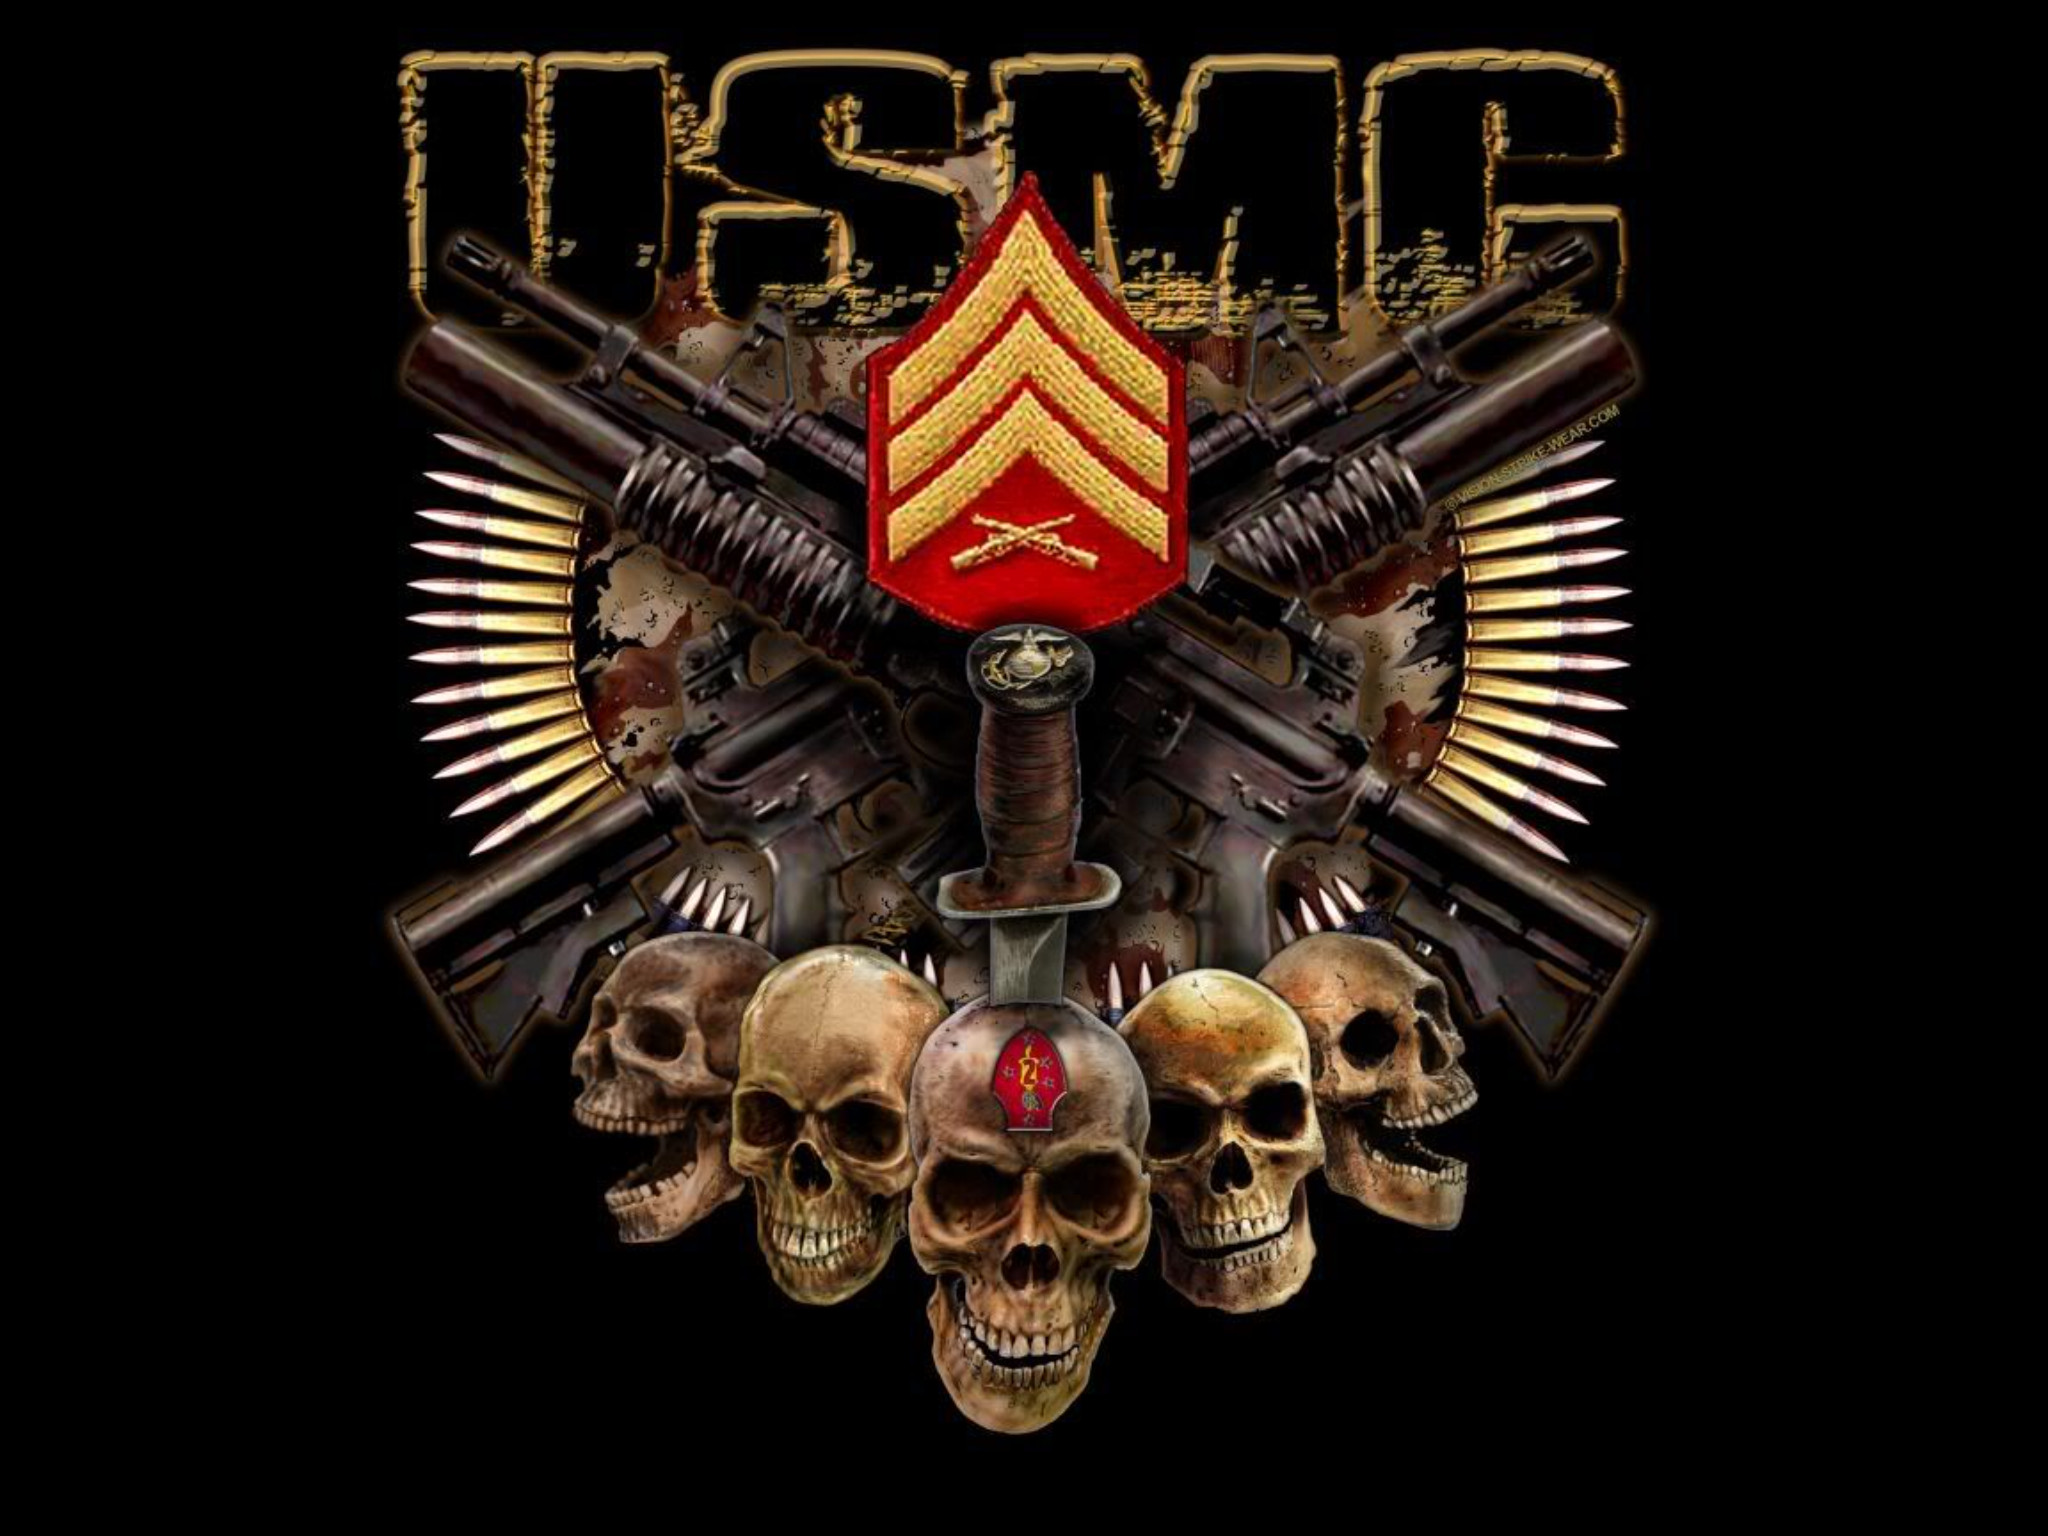 Amazing Wallpaper Logo Usmc - 393243  Collection_673969.jpg